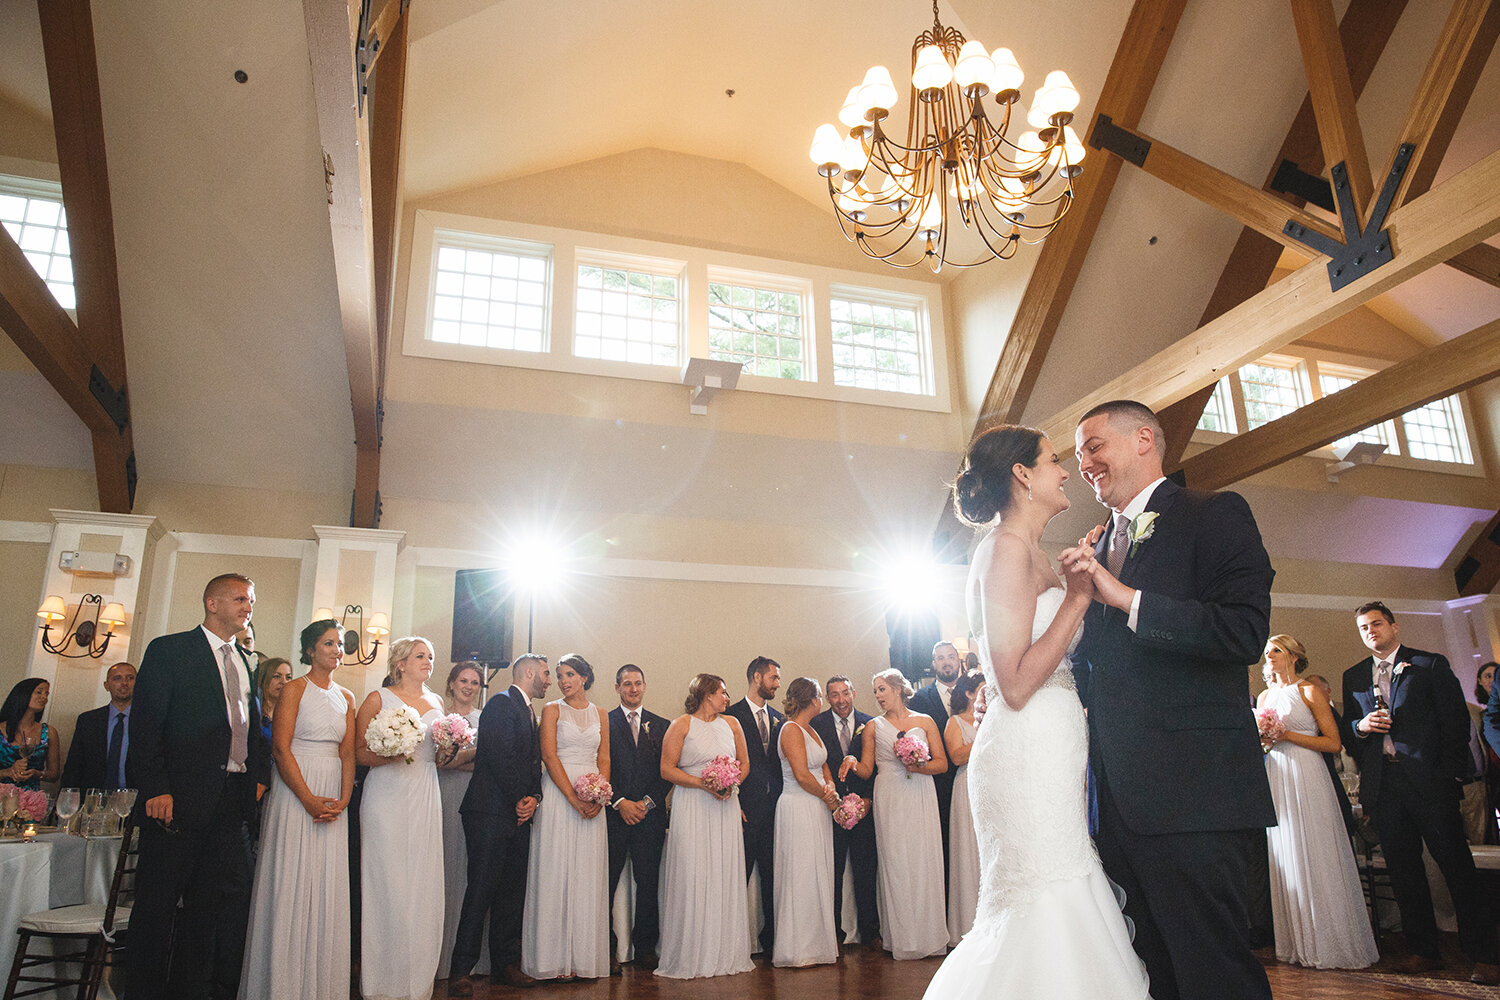 Pinehills-Pavilion-Wedding-Dance.jpg